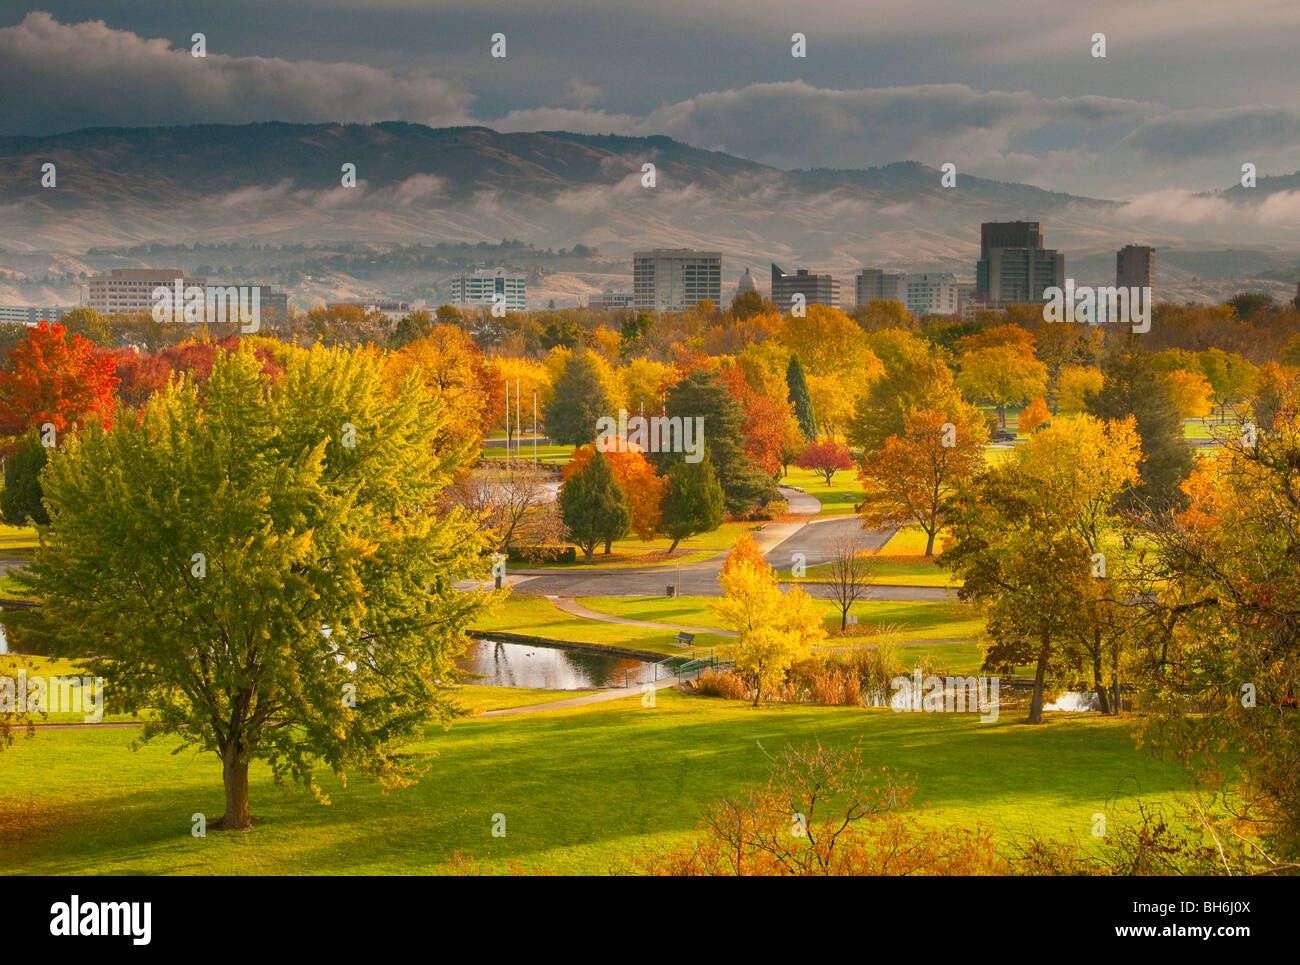 Idaho, Boise. Colorful autumn cityscape of Ann Morrison Park and downtown with the foothills beyond. - Stock Image